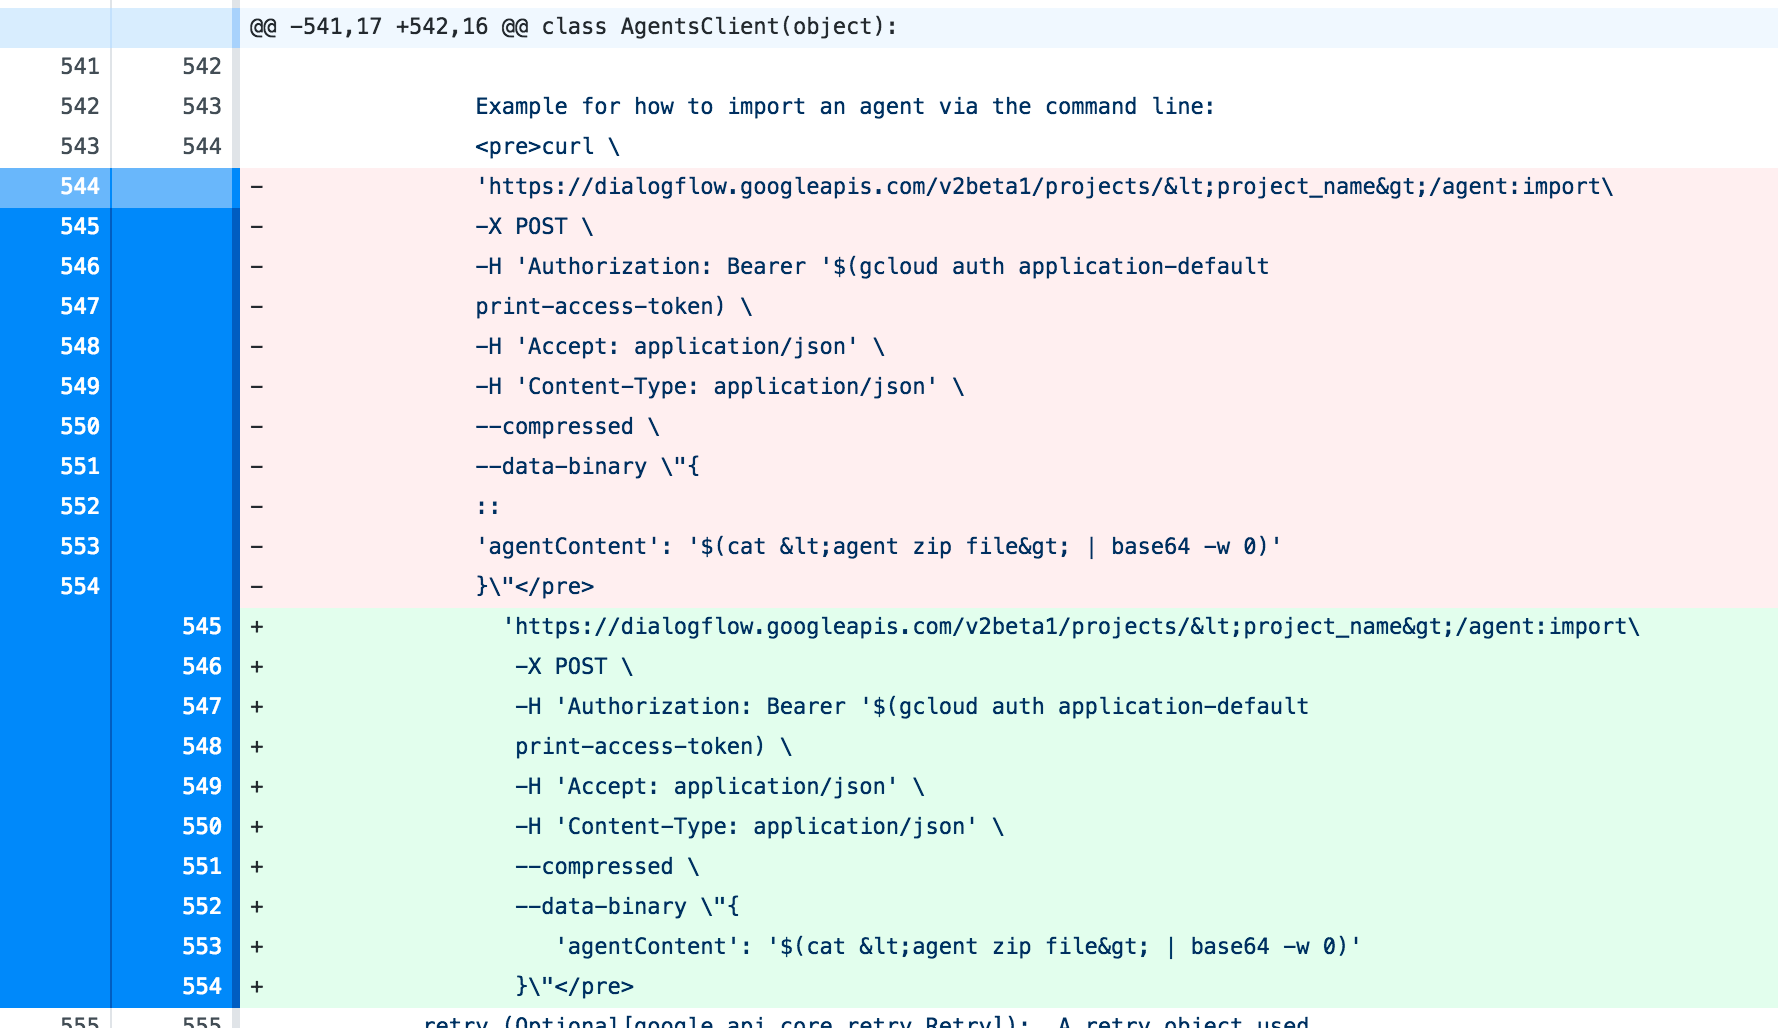 Sphinx finds unexpected indentation in dialogflow docstrings · Issue